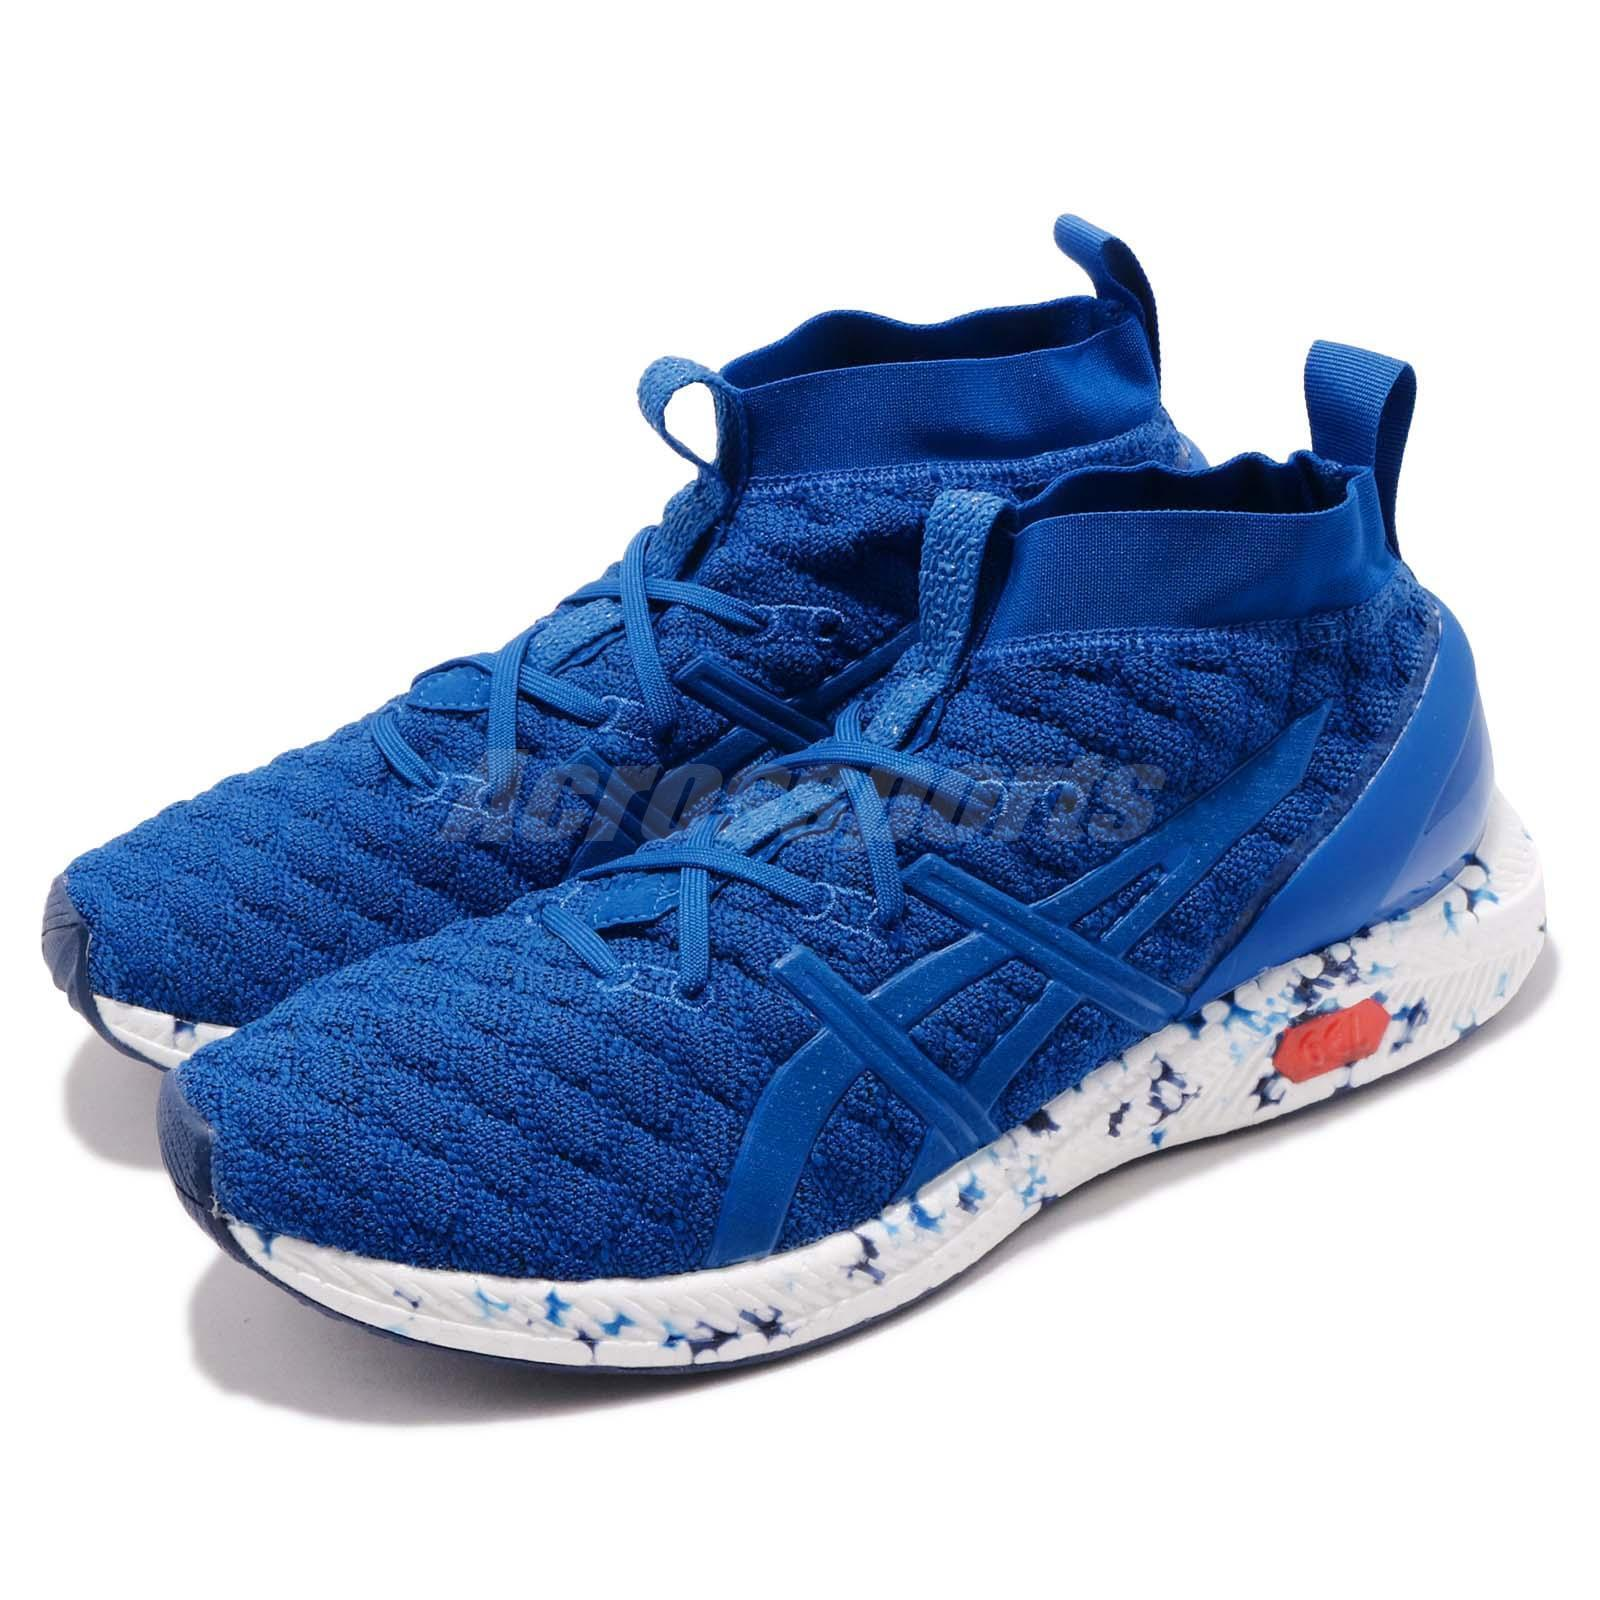 Asics Hyper Gel Kan Imperial blueee Lifestyle Mens Running shoes 1021A032-400